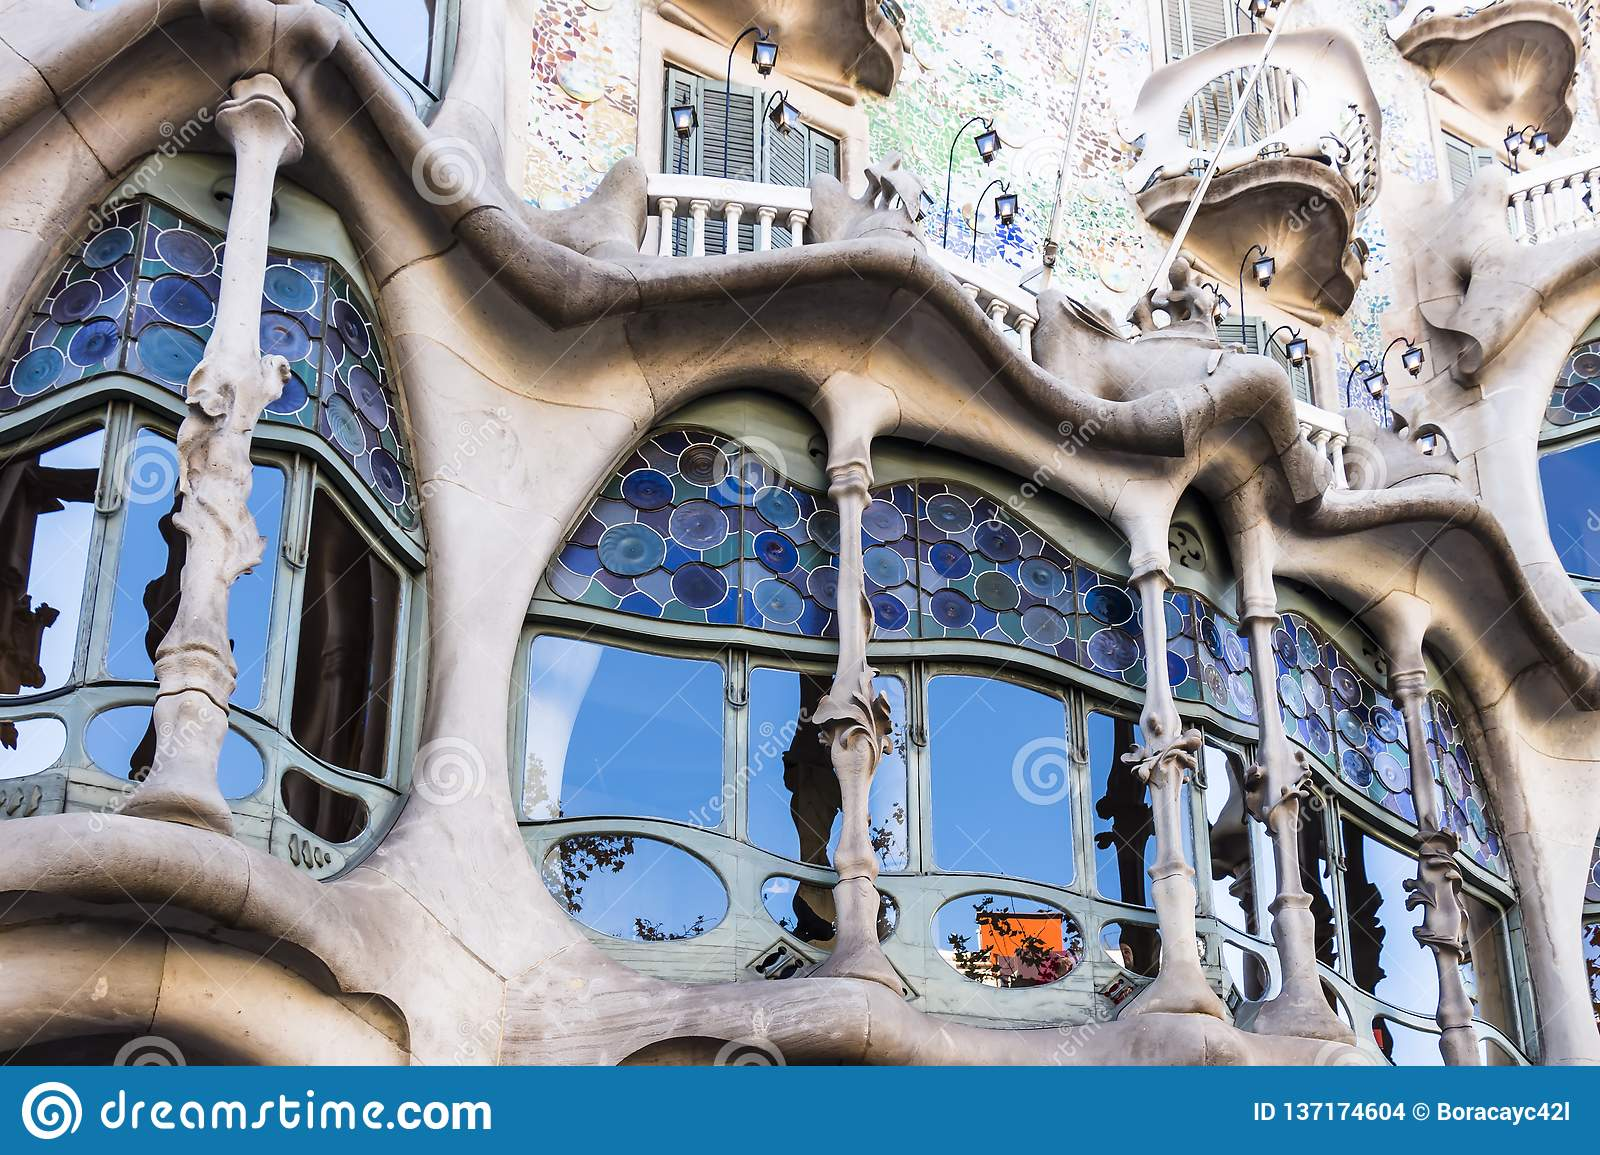 Stained glass windows of the lower floors of Casa Batllo